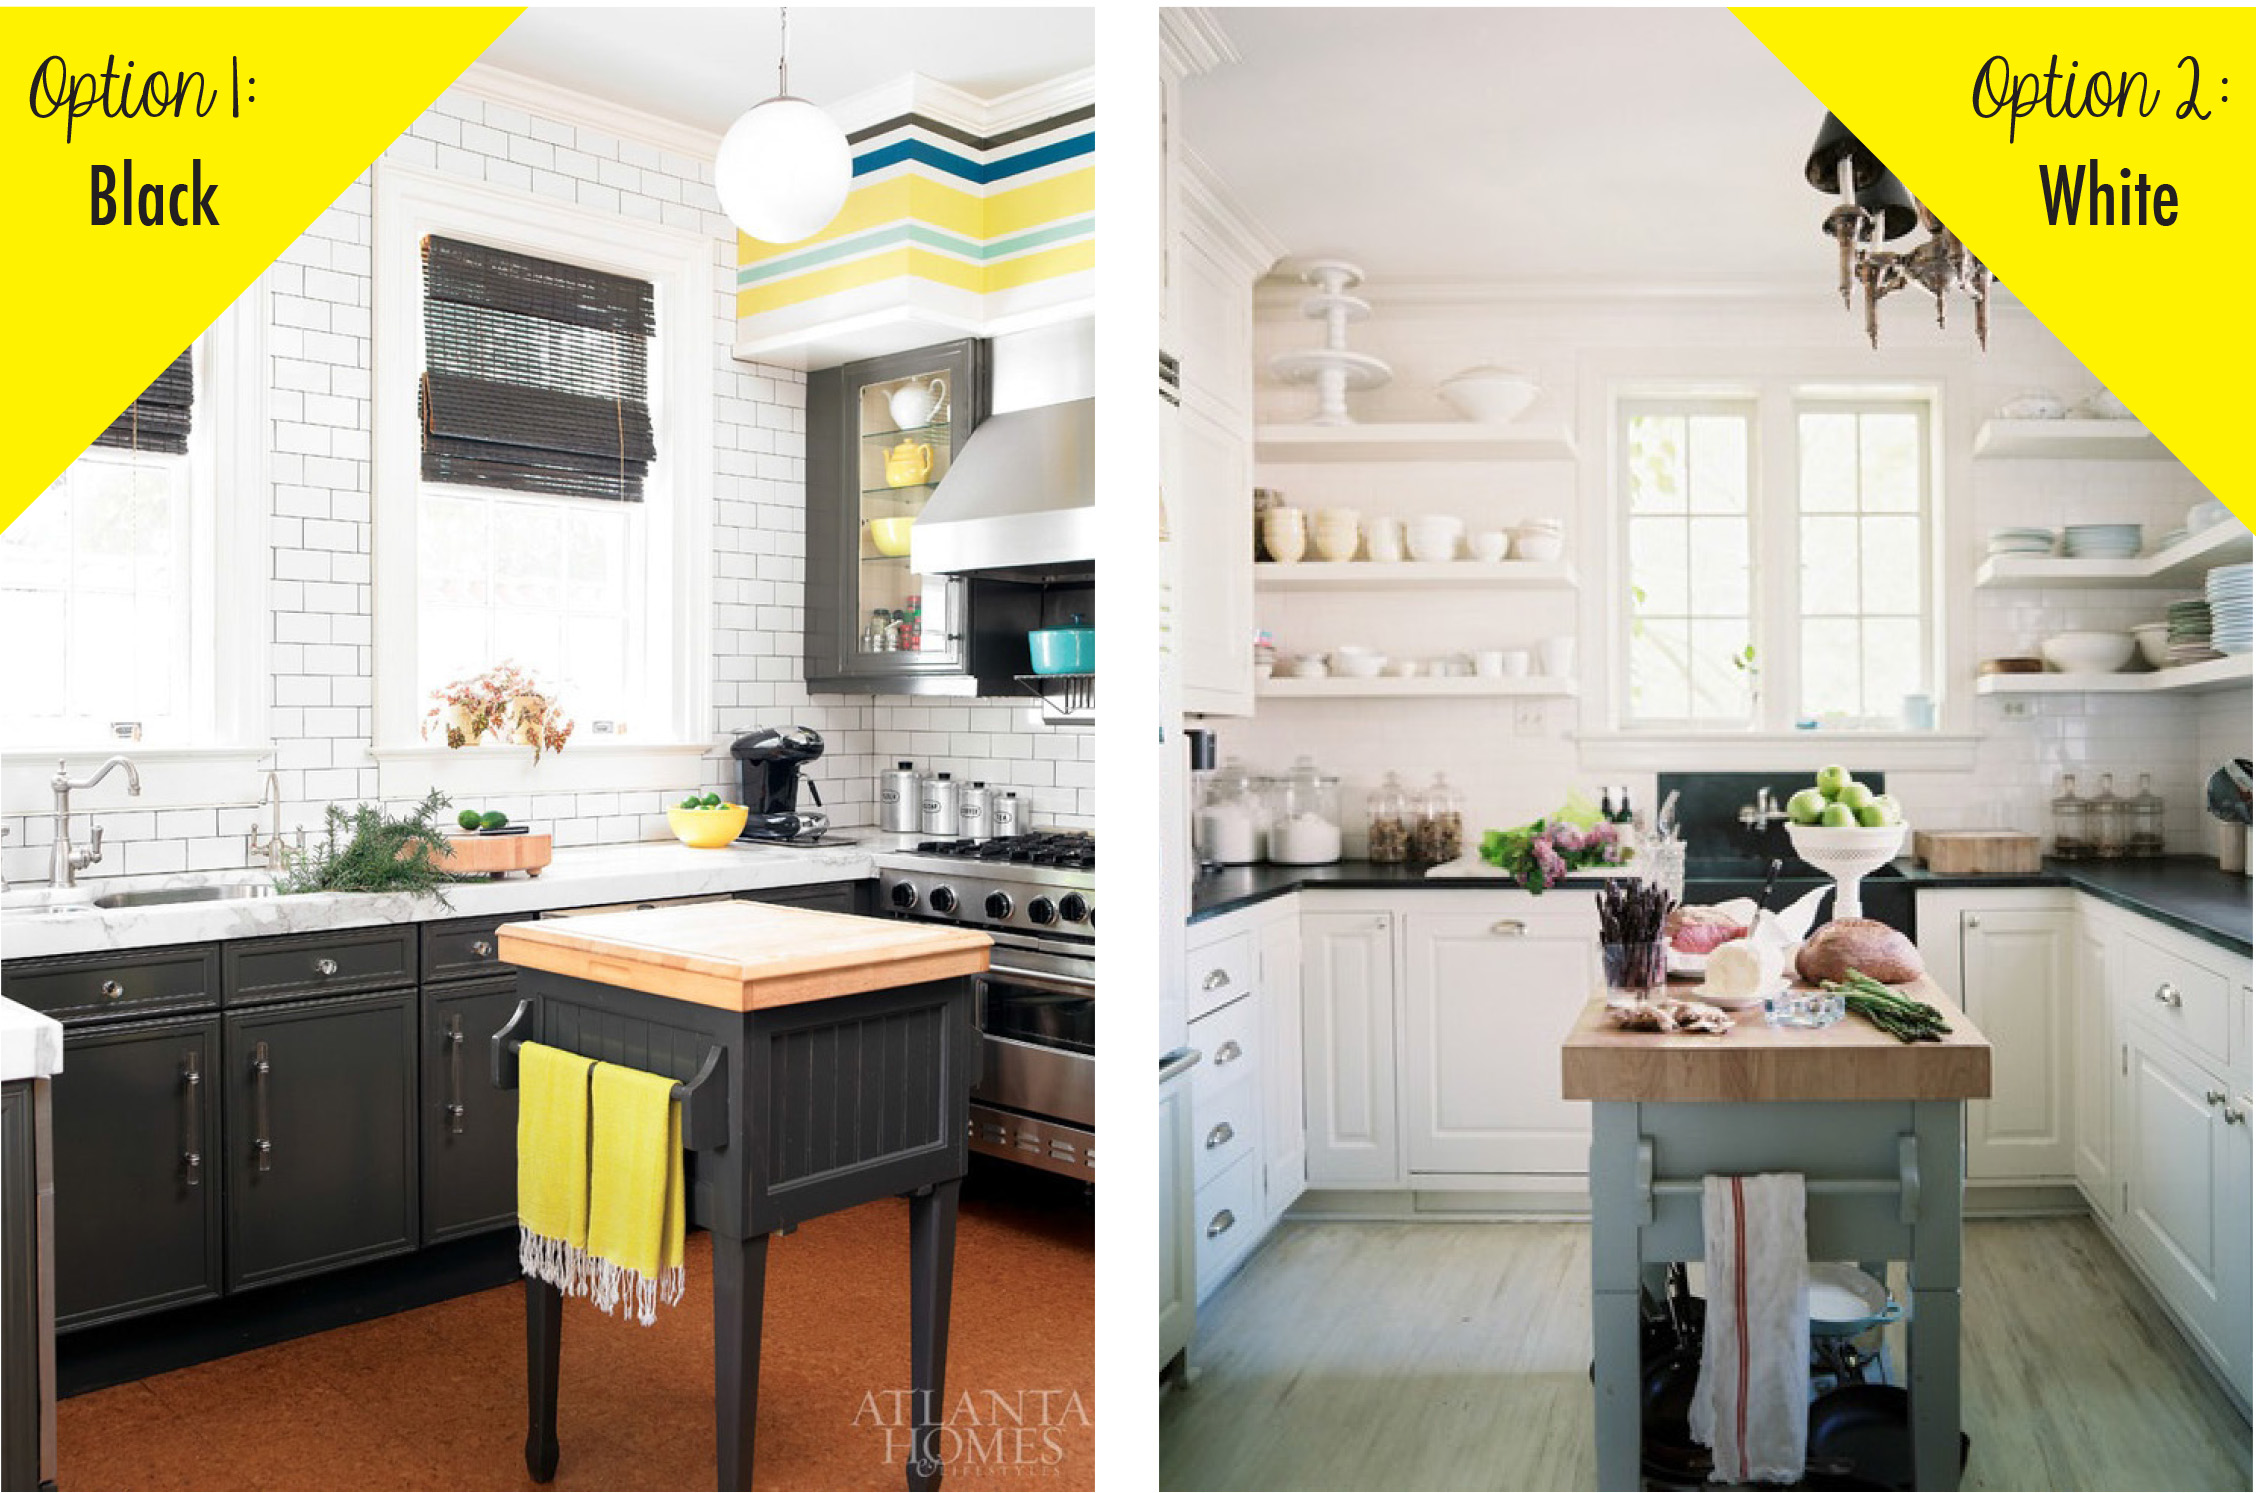 Black Bottom And White Top Kitchen Cabinets kitchen cabinets white top black bottom